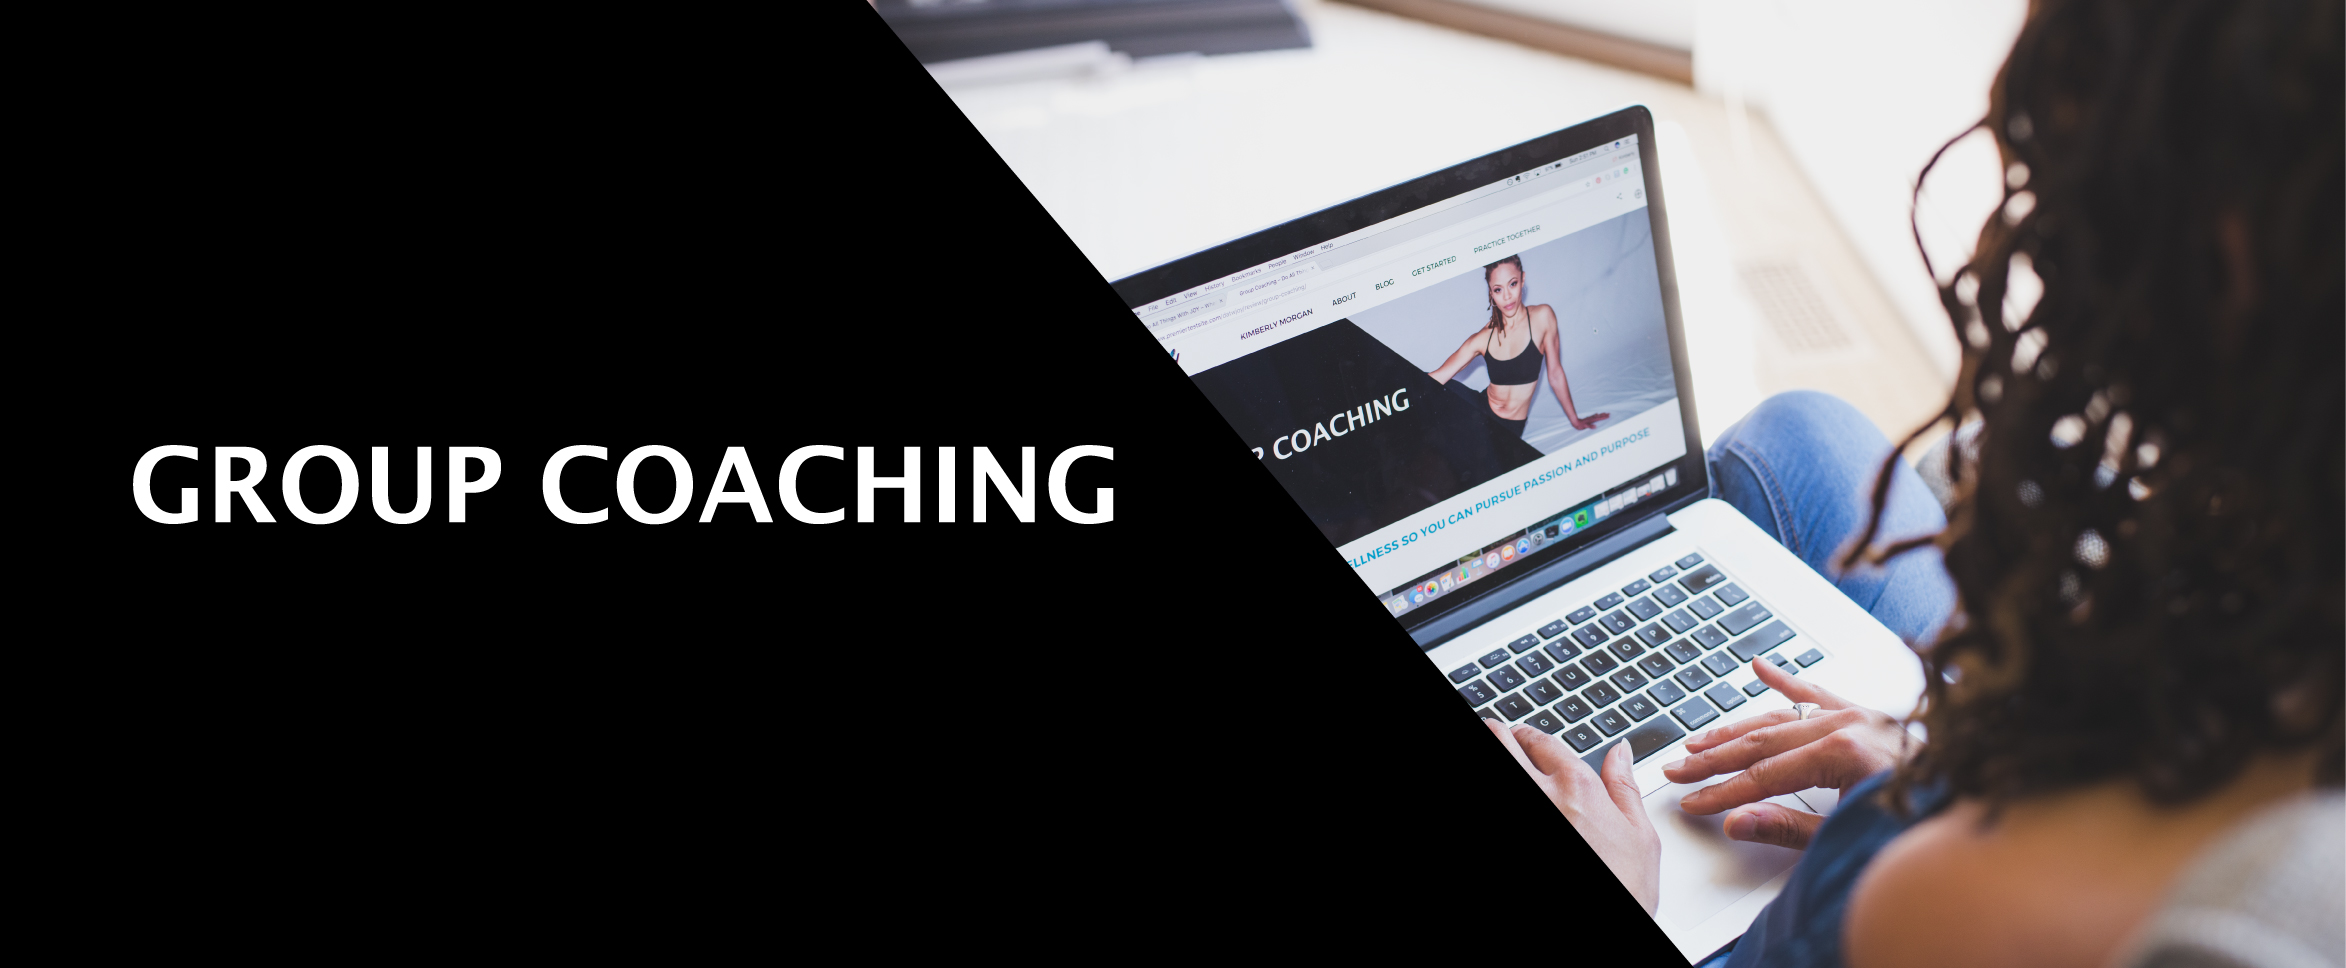 group coaching featured